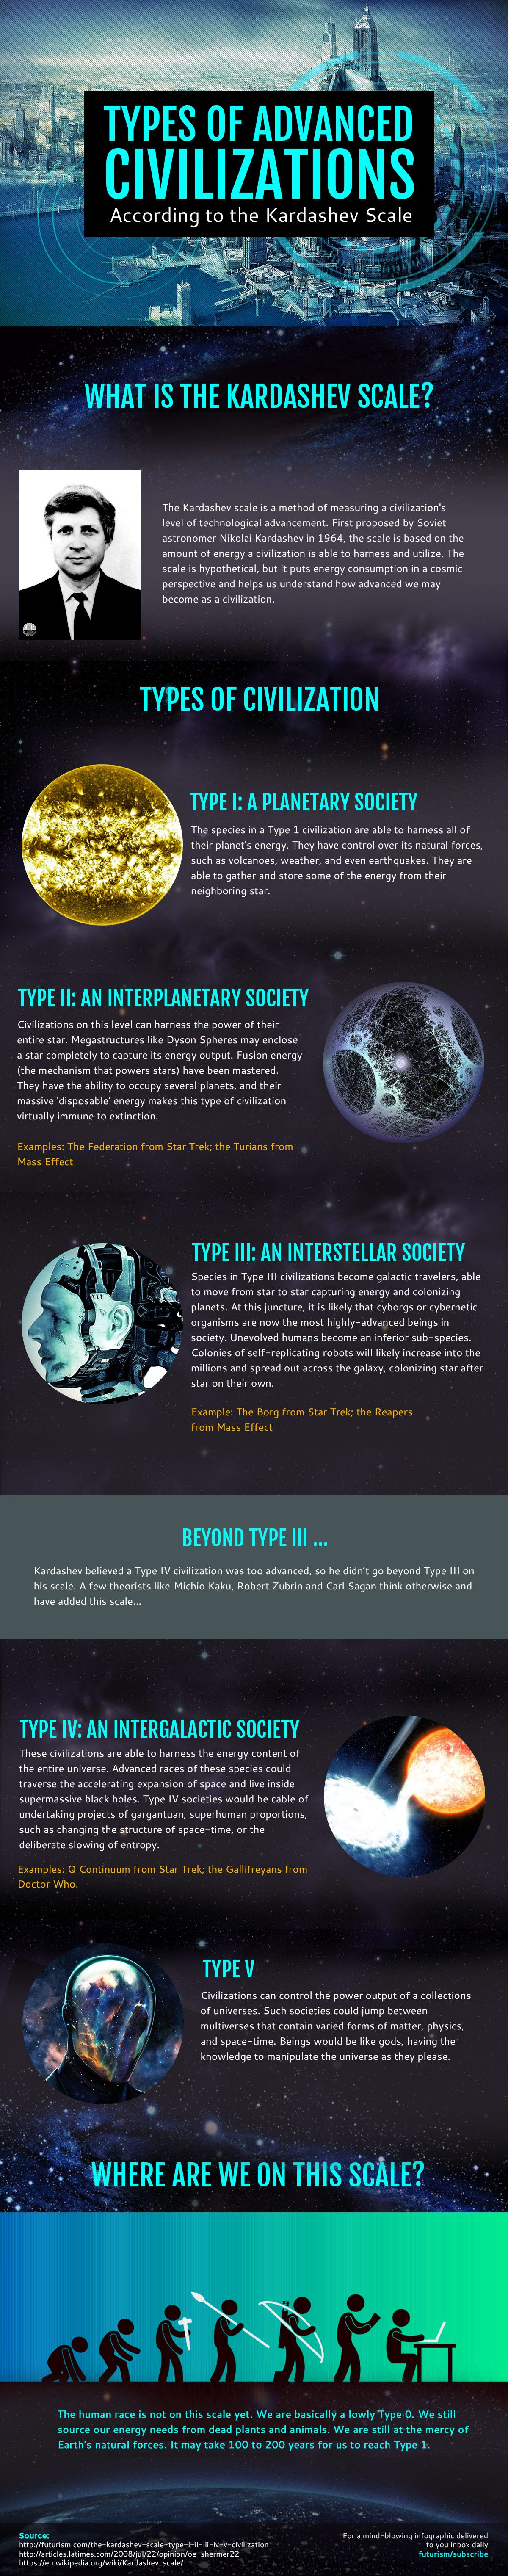 Infographic A Look At The Kardashev Scale And How Our Human Keelynet News 2012 Free Energy Gravity Control Electronic Health Civilization Measures Up